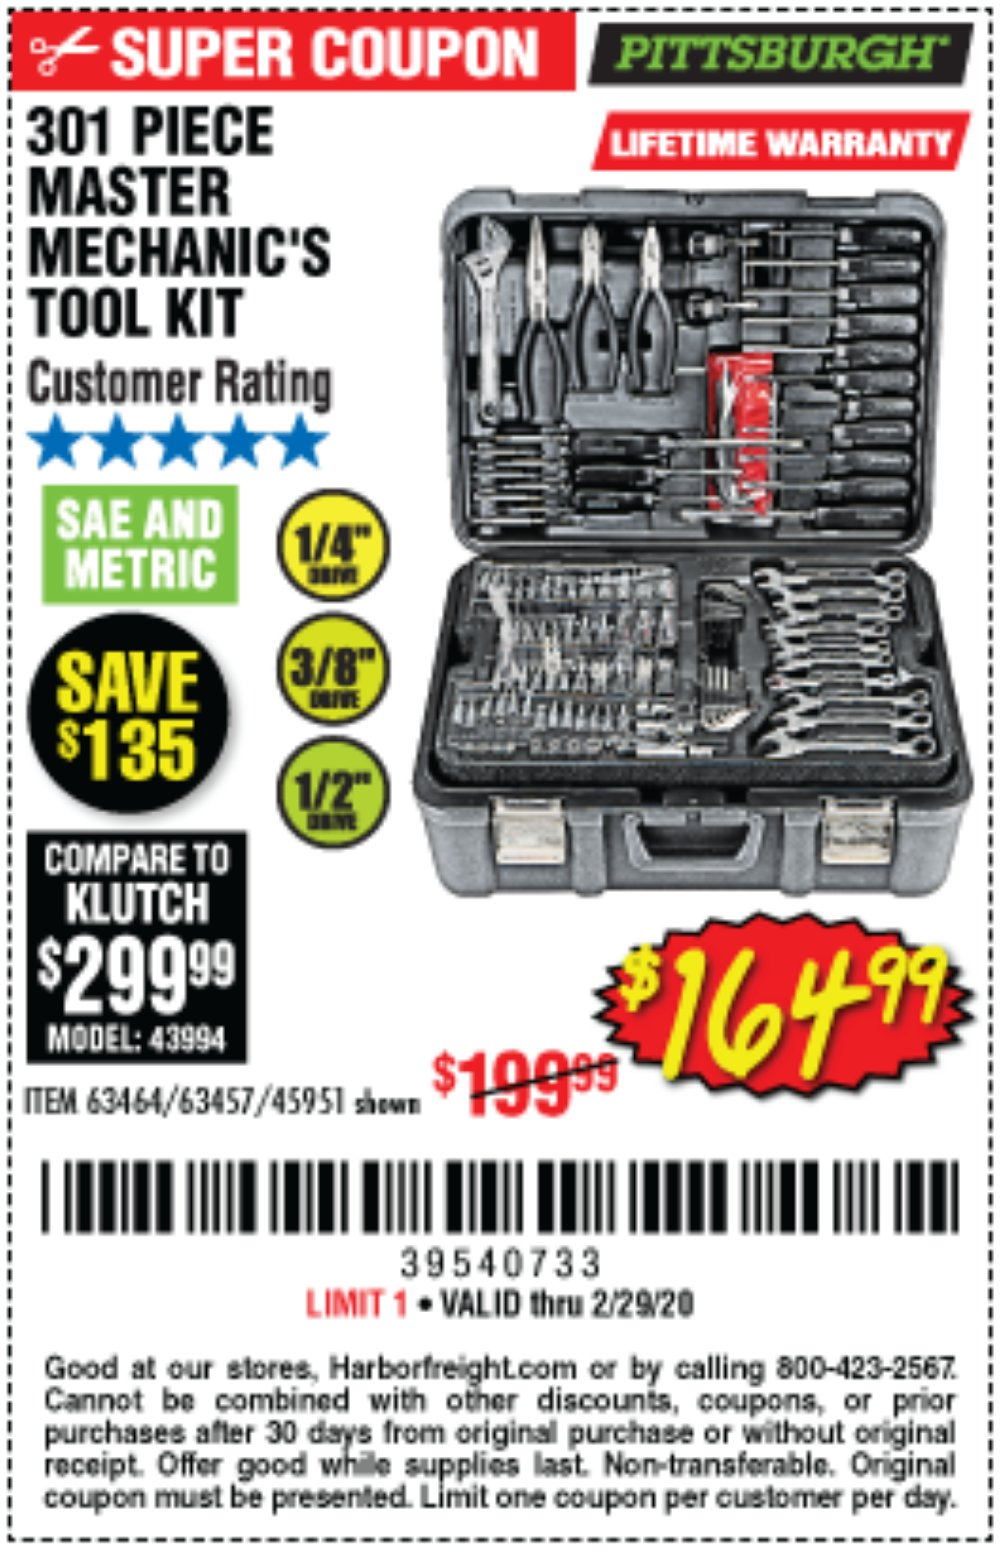 Harbor Freight Coupon, HF Coupons - 301 Piece Master Mechanic's Tool Kit